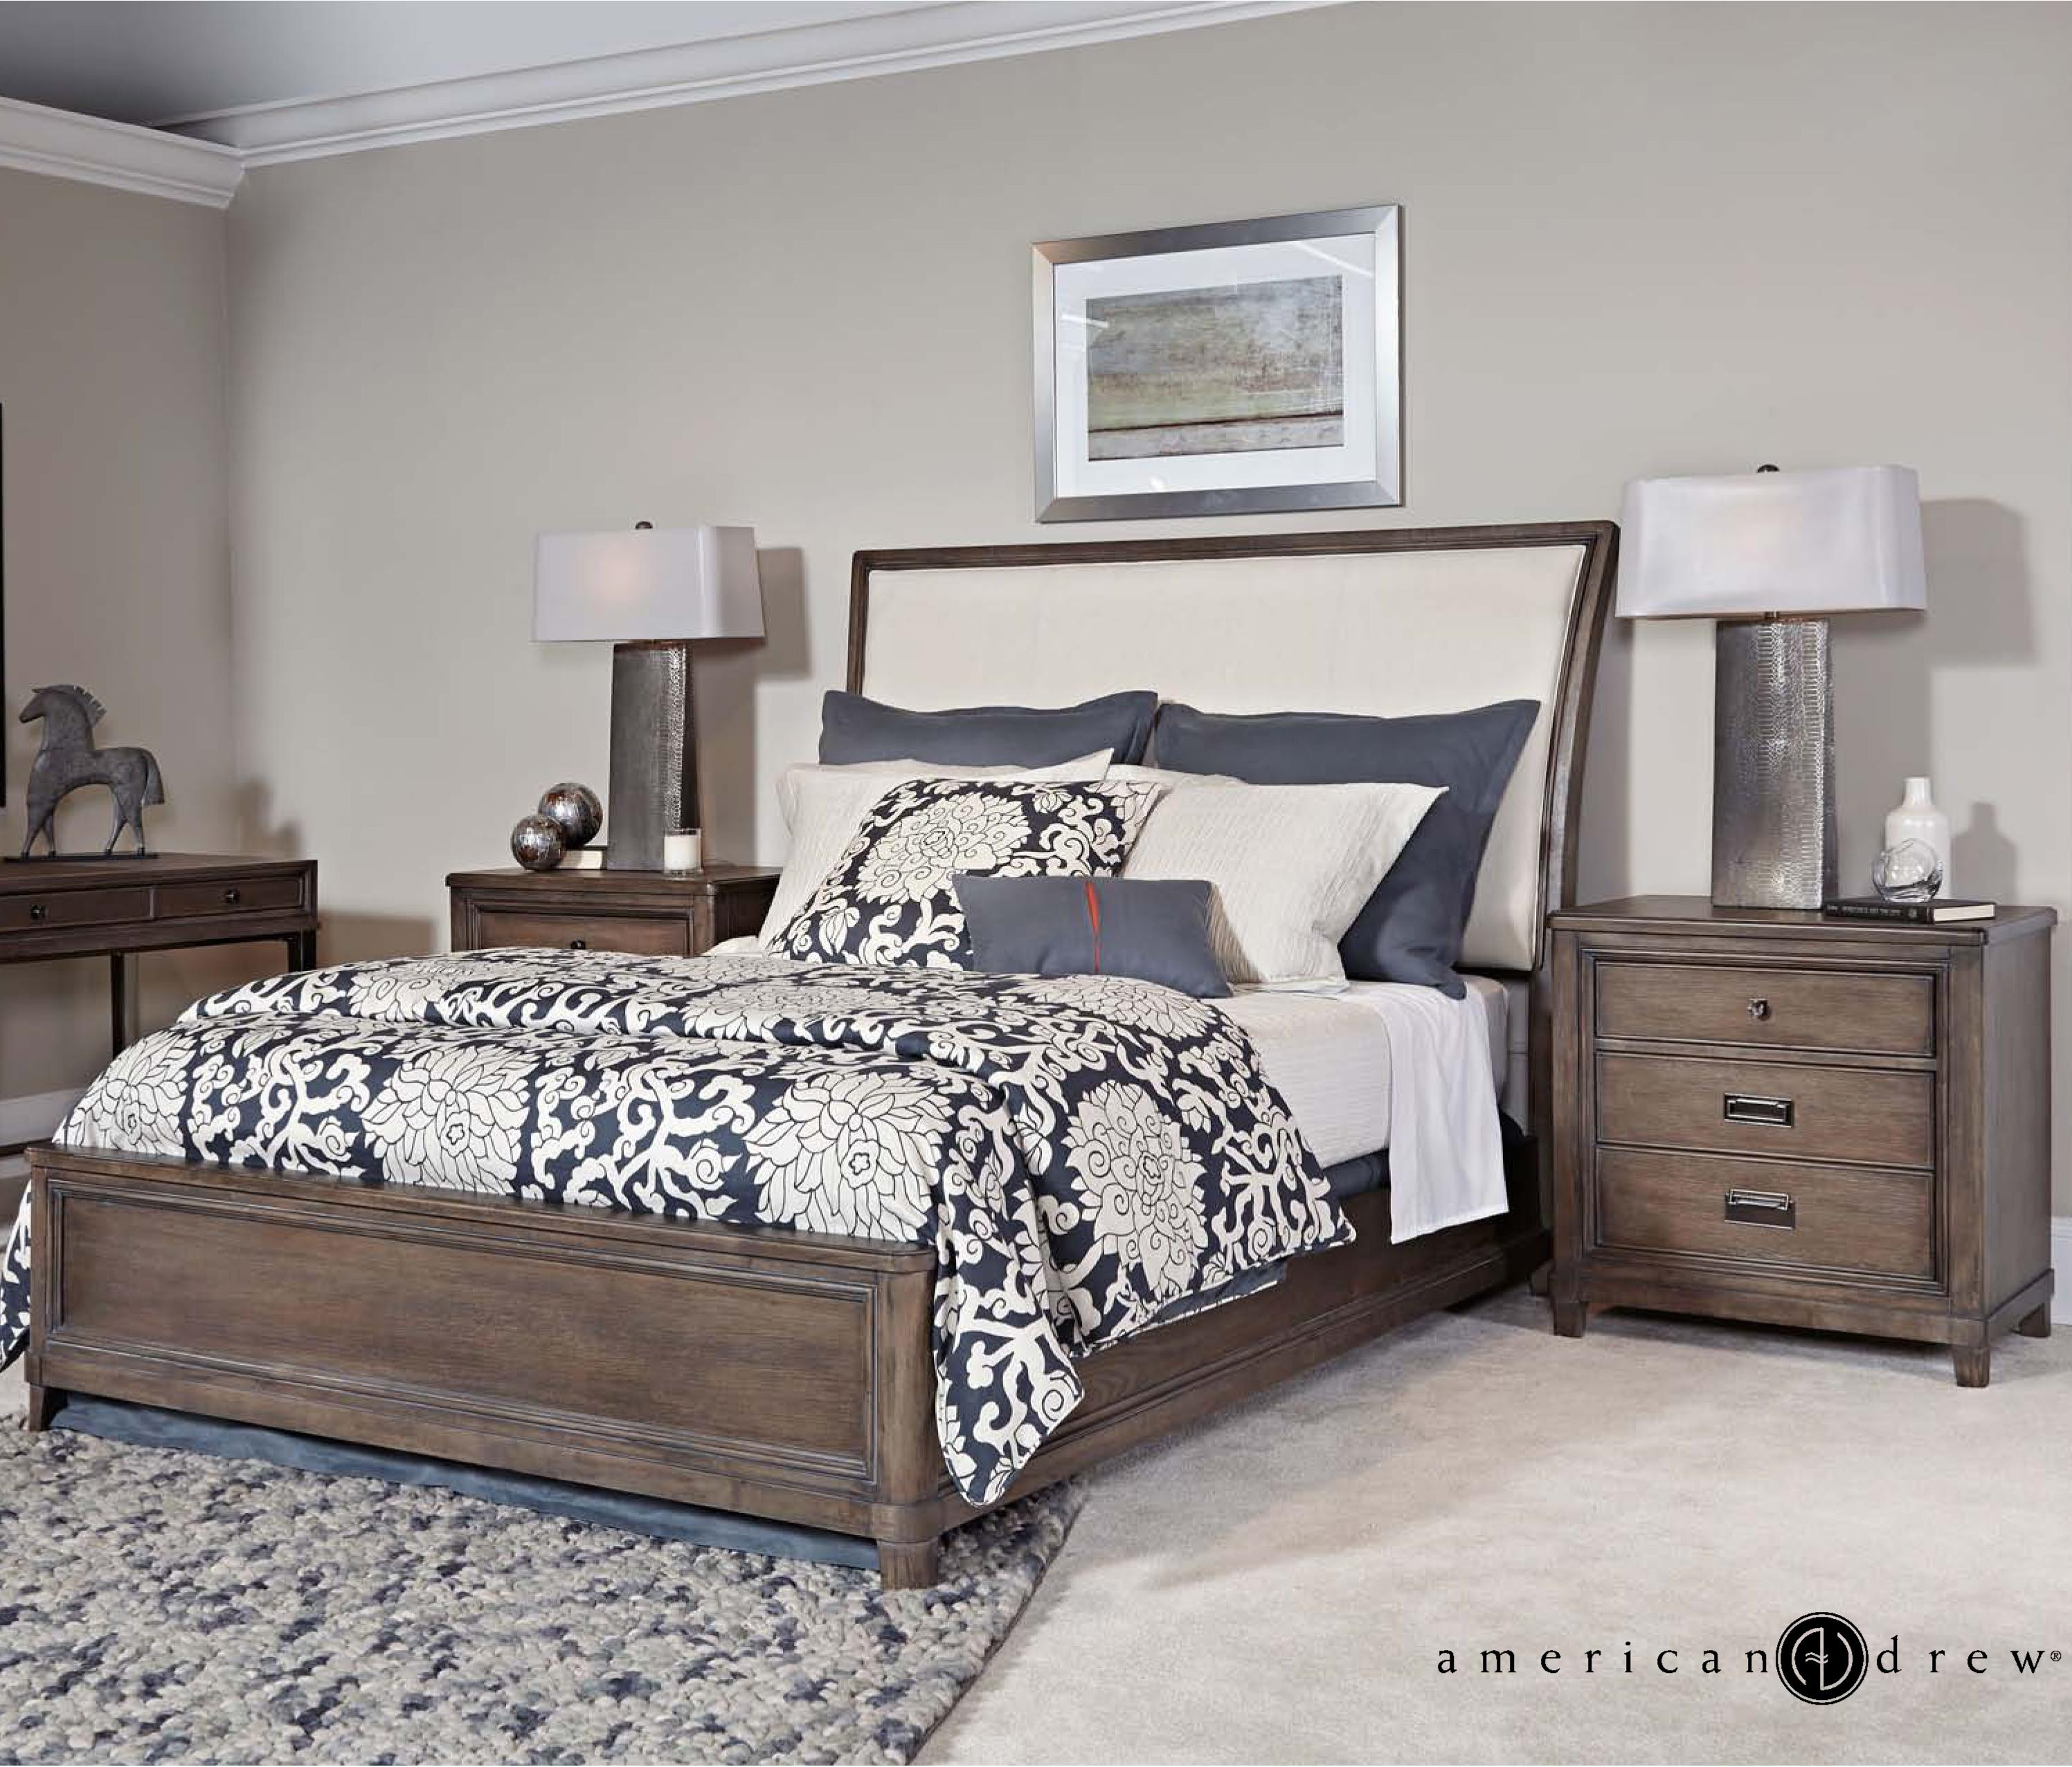 American Drew Park Studio California King Bedroom Group Hudson 39 S Furniture Bedroom Groups